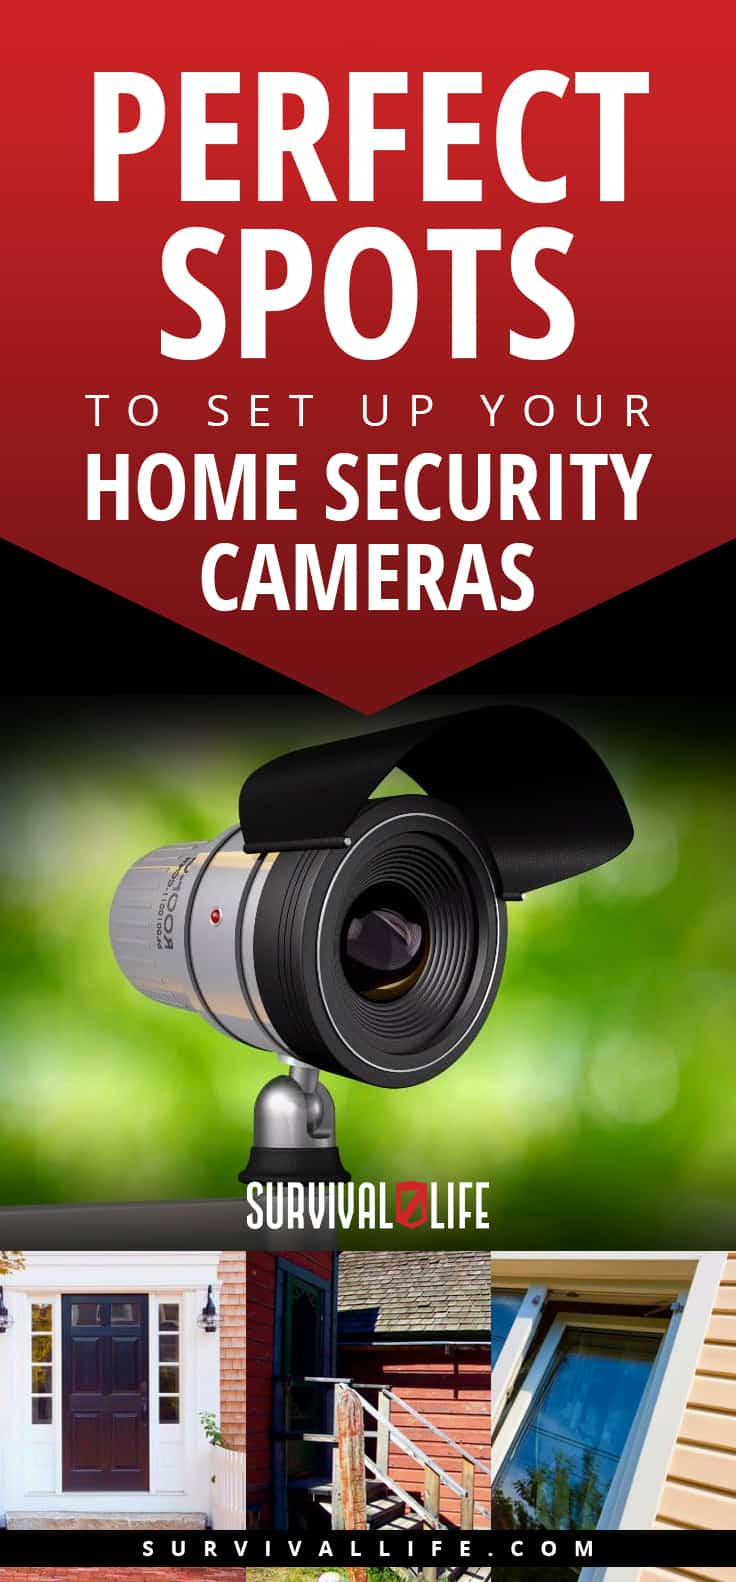 Home Security Cameras | Perfect Spots To Set Up Your Home Security Cameras